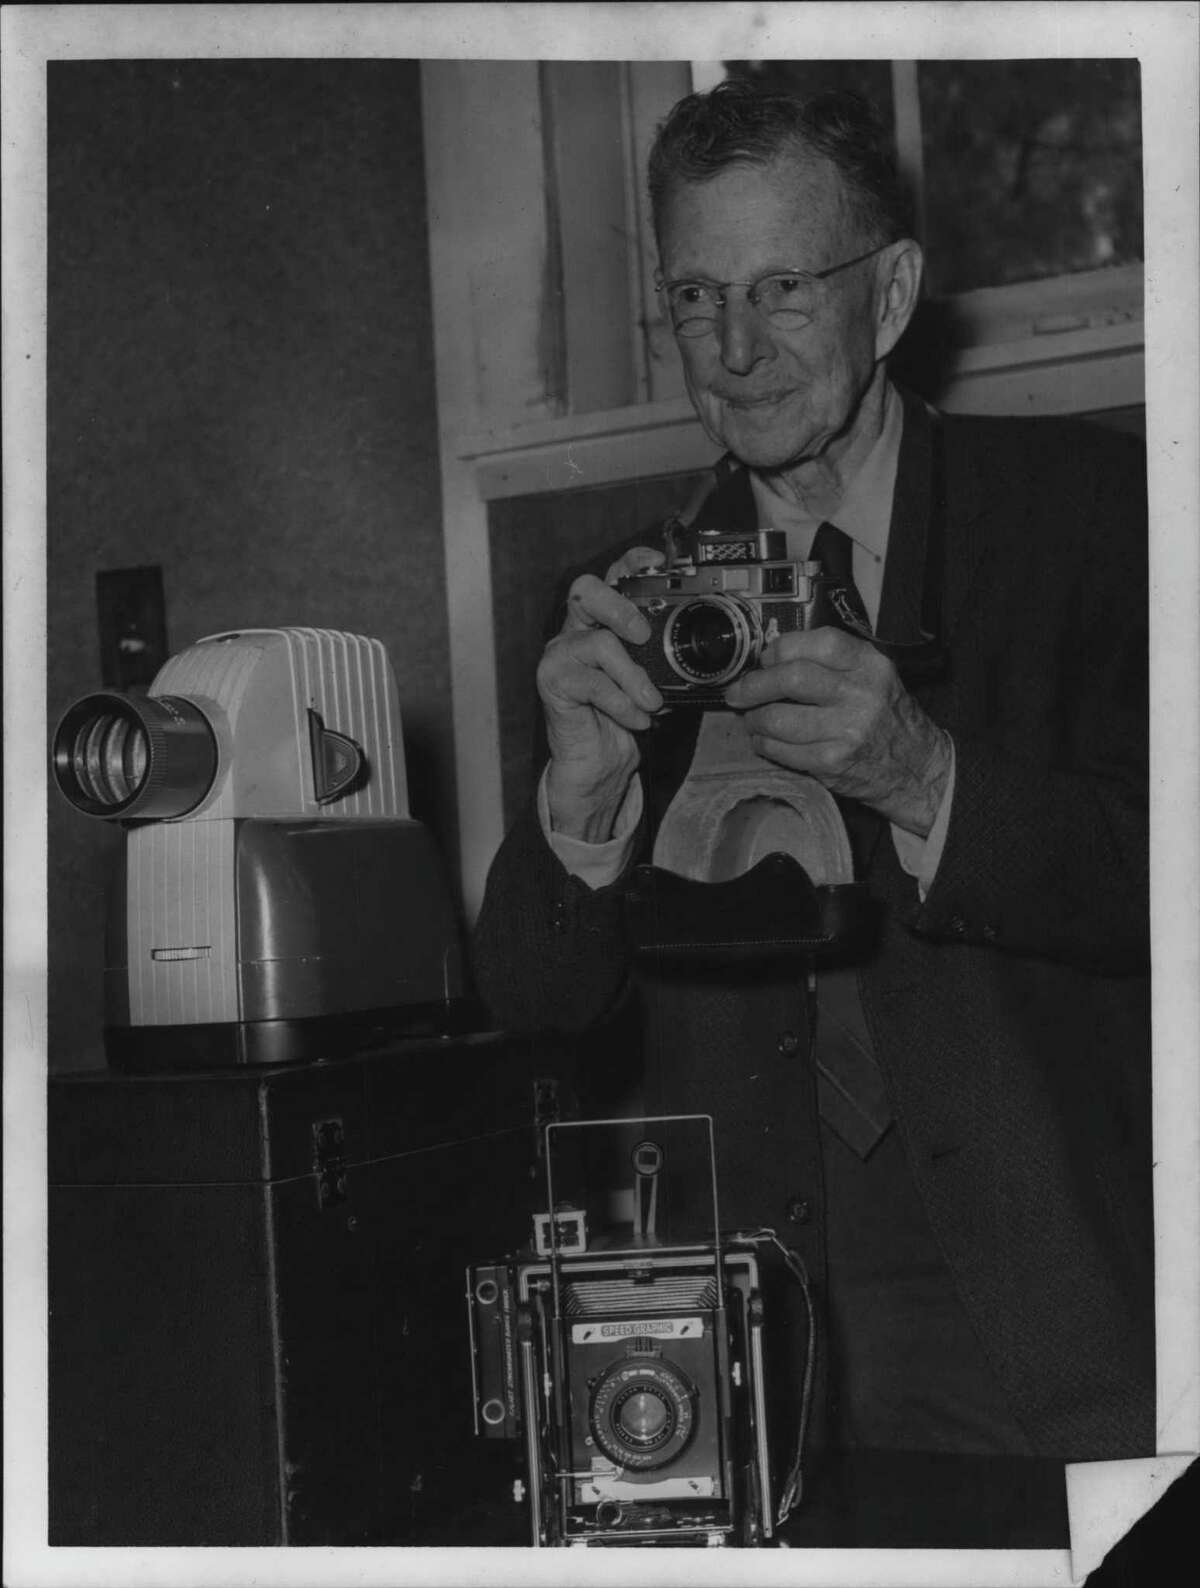 Dr. William D. Coolidge with cameras in Schenectady, New York. October 14, 1963 (Times Union Archive)